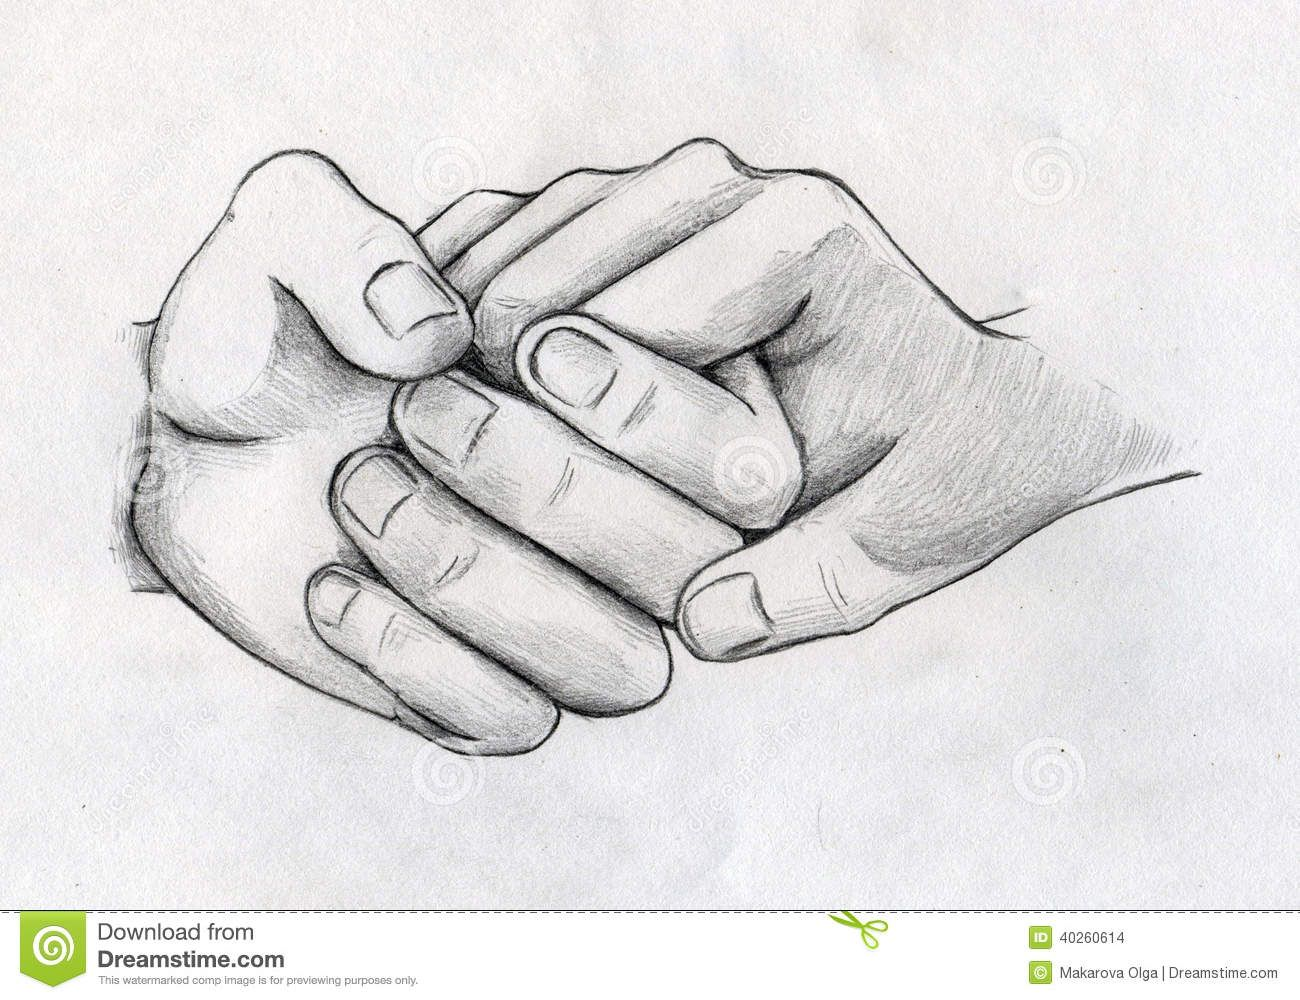 Images for pencil drawing of couple holding hands